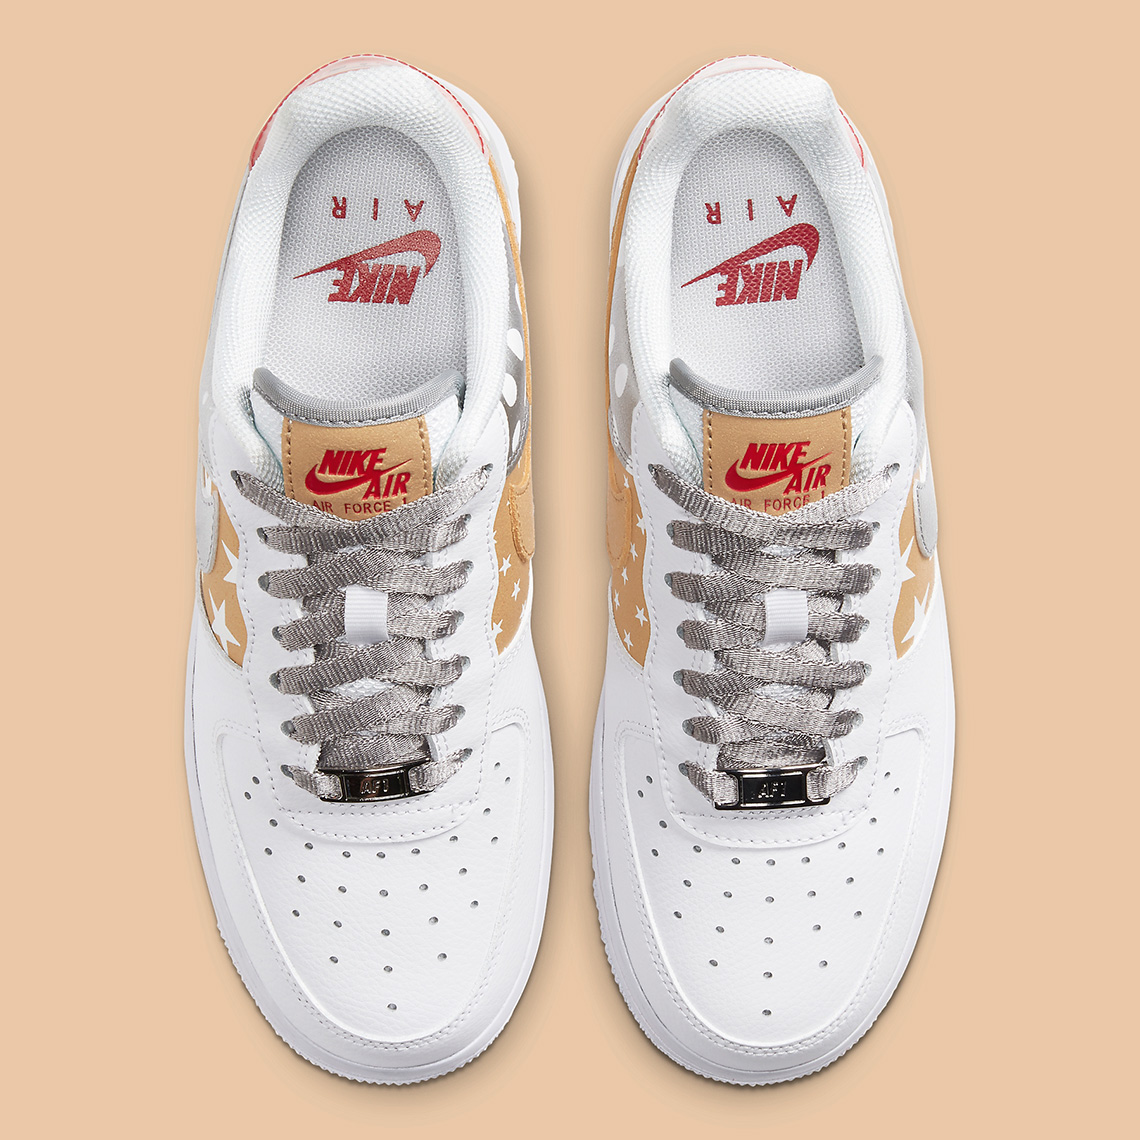 Nike Air Force 1 Low Receives Stars & Polka Dots Makeover: Official Images